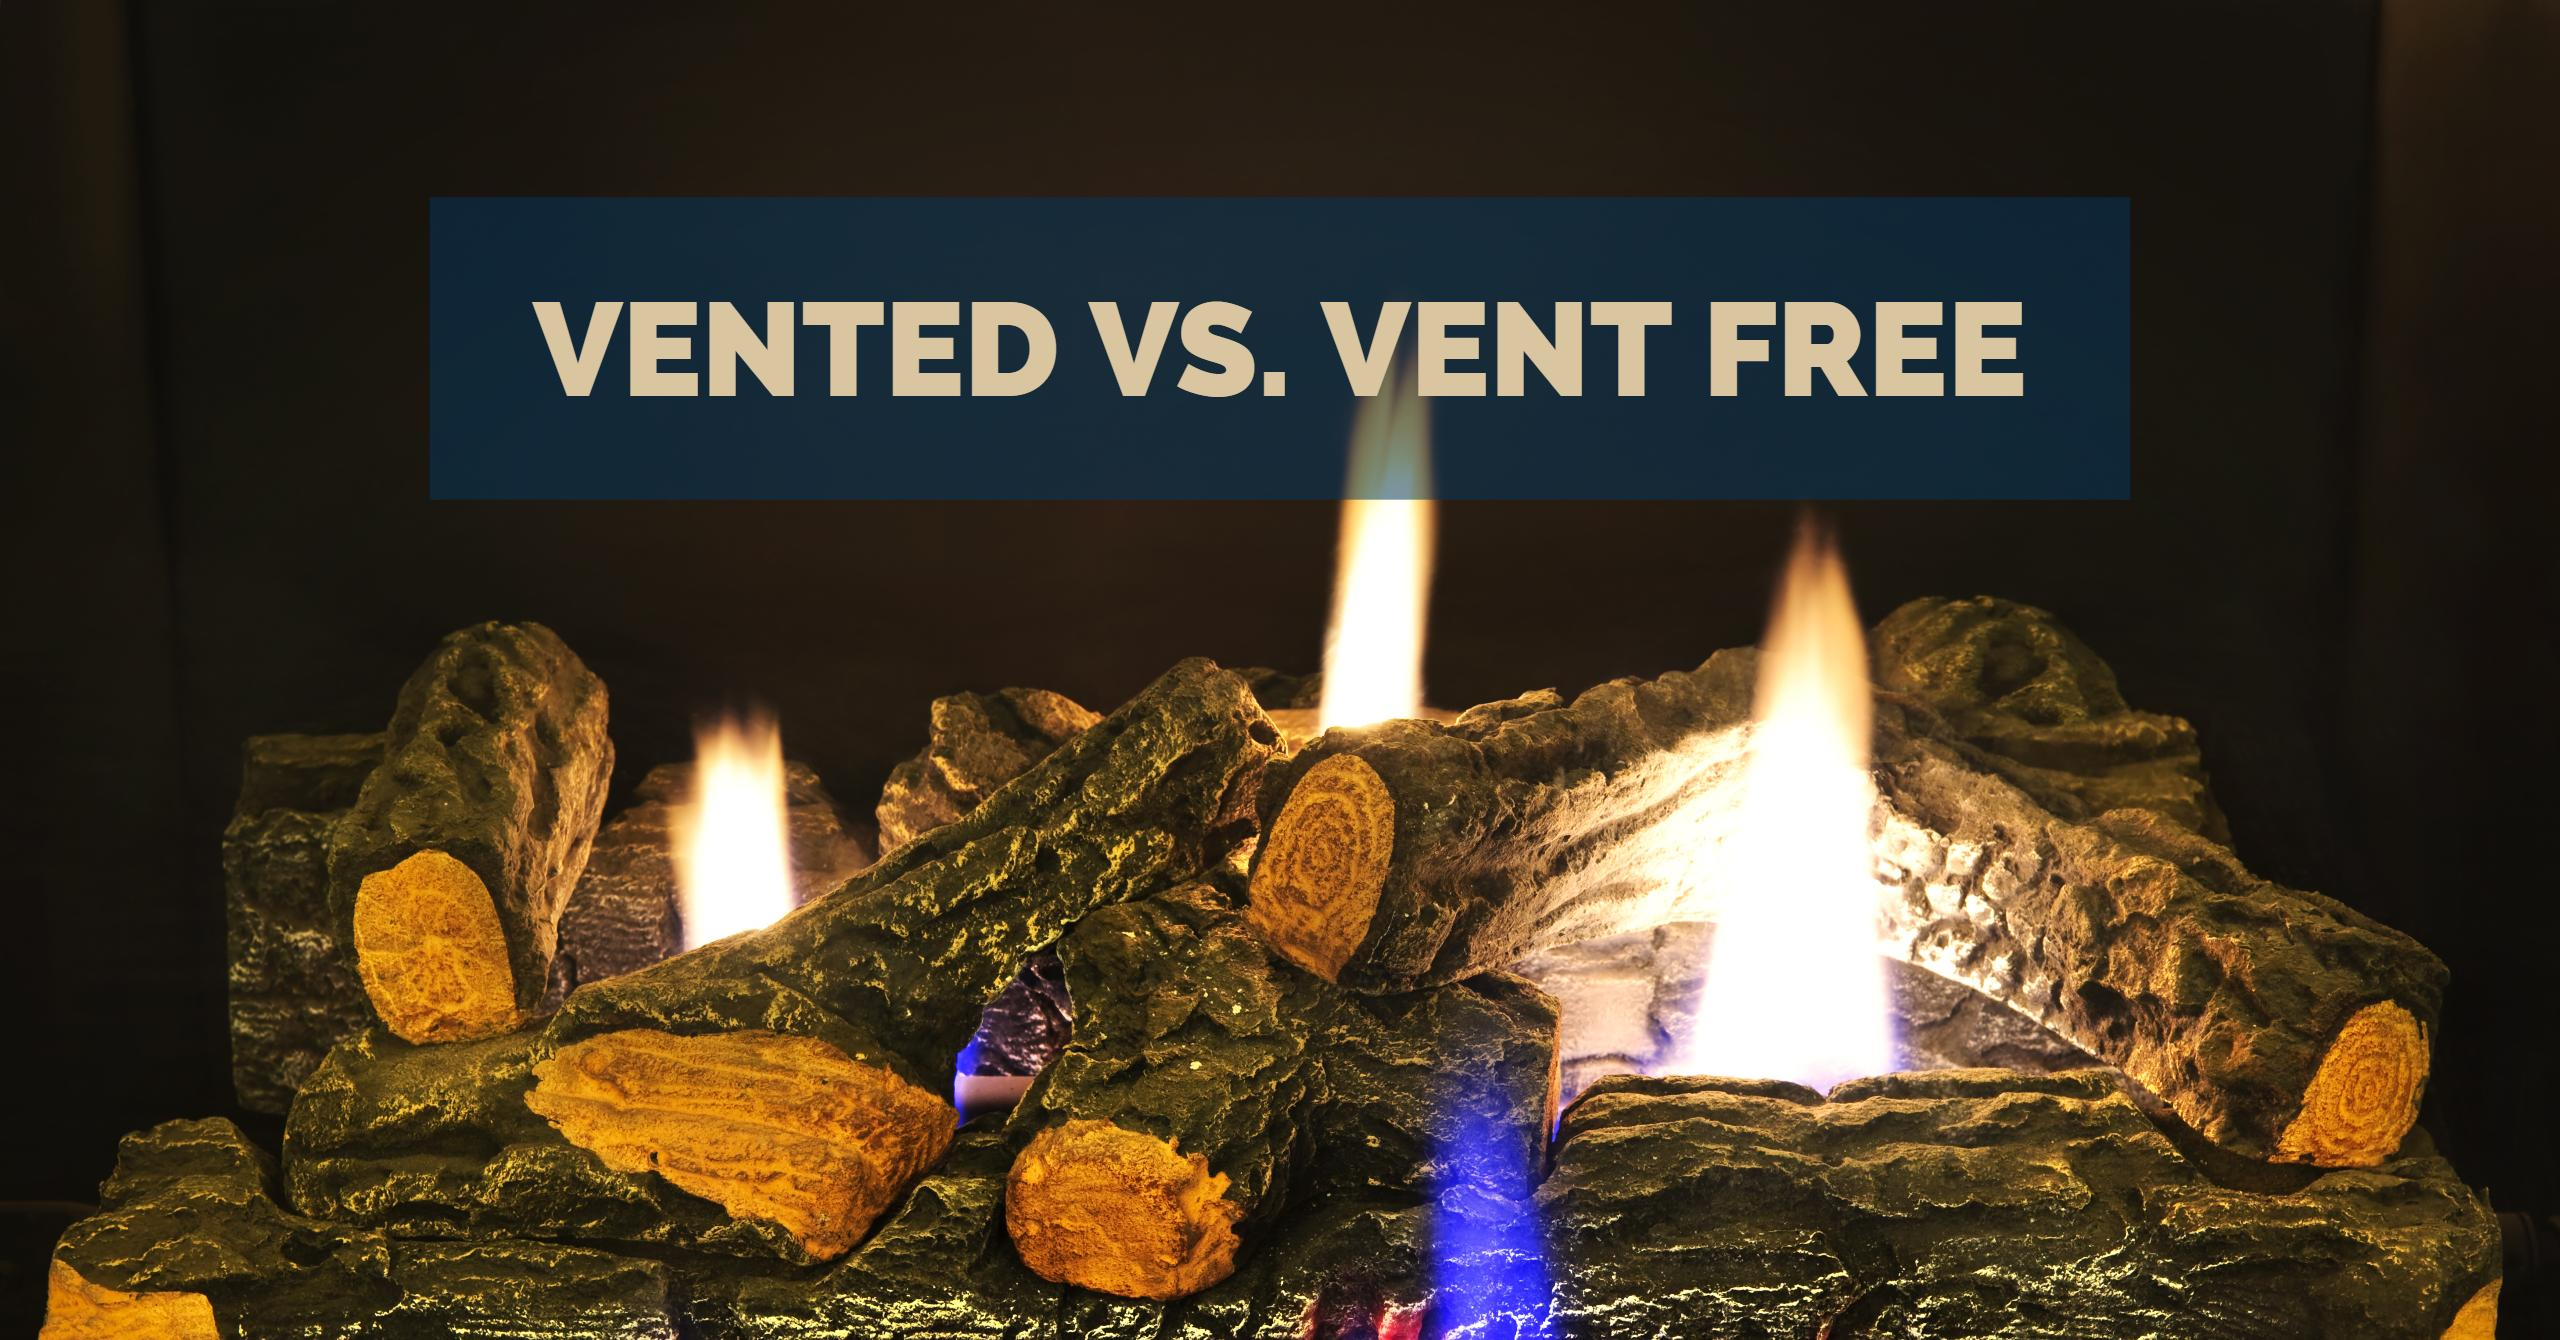 Vented and vent free gas logs are not the same thing. But